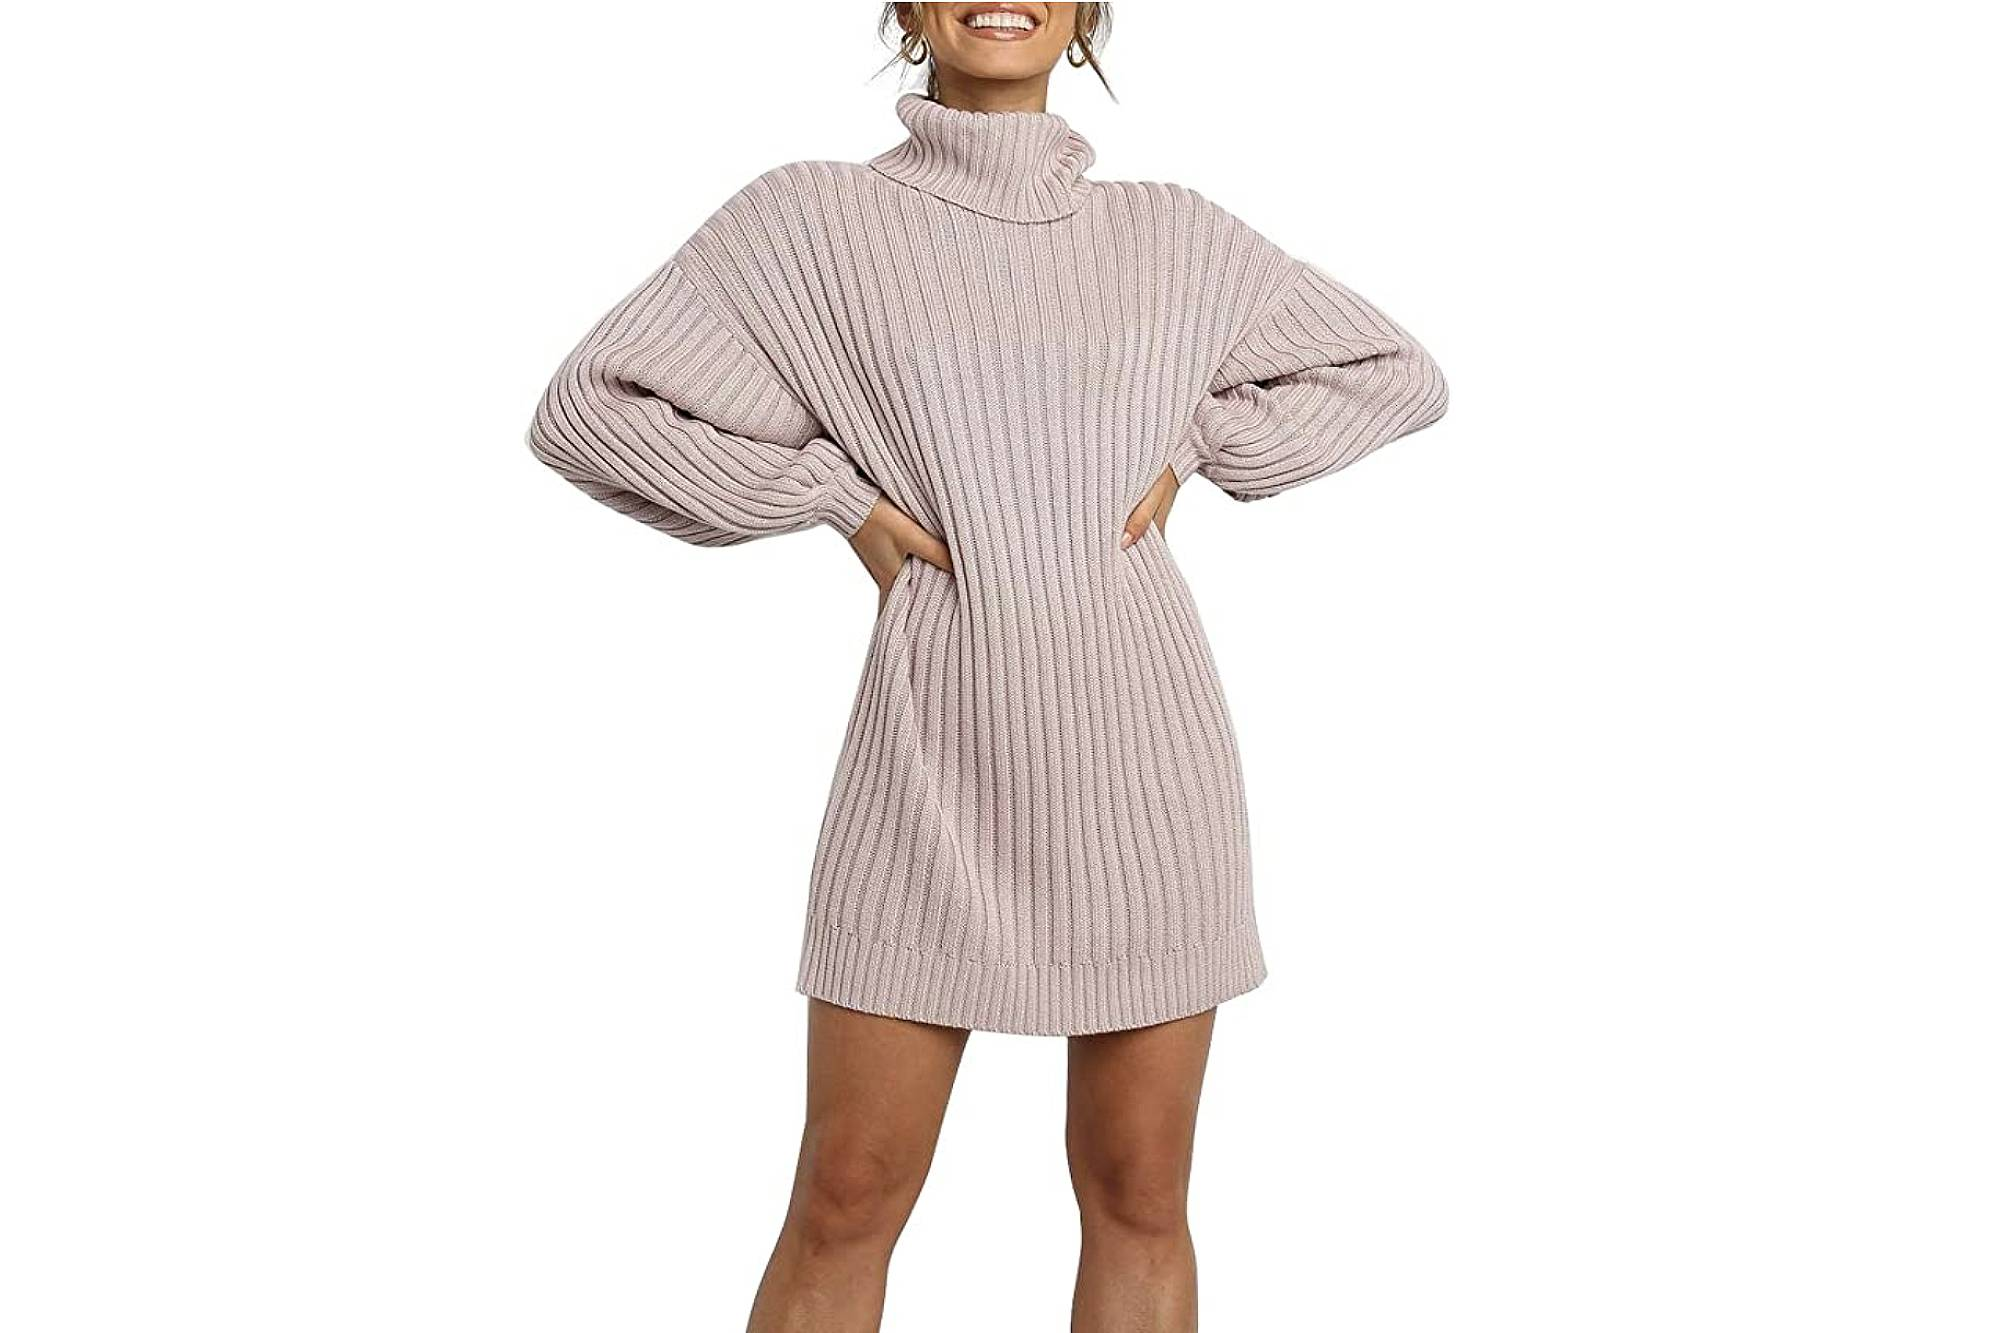 Blencot Cable Knit Sweater Dress Is So Incredibly Soft And Cozy